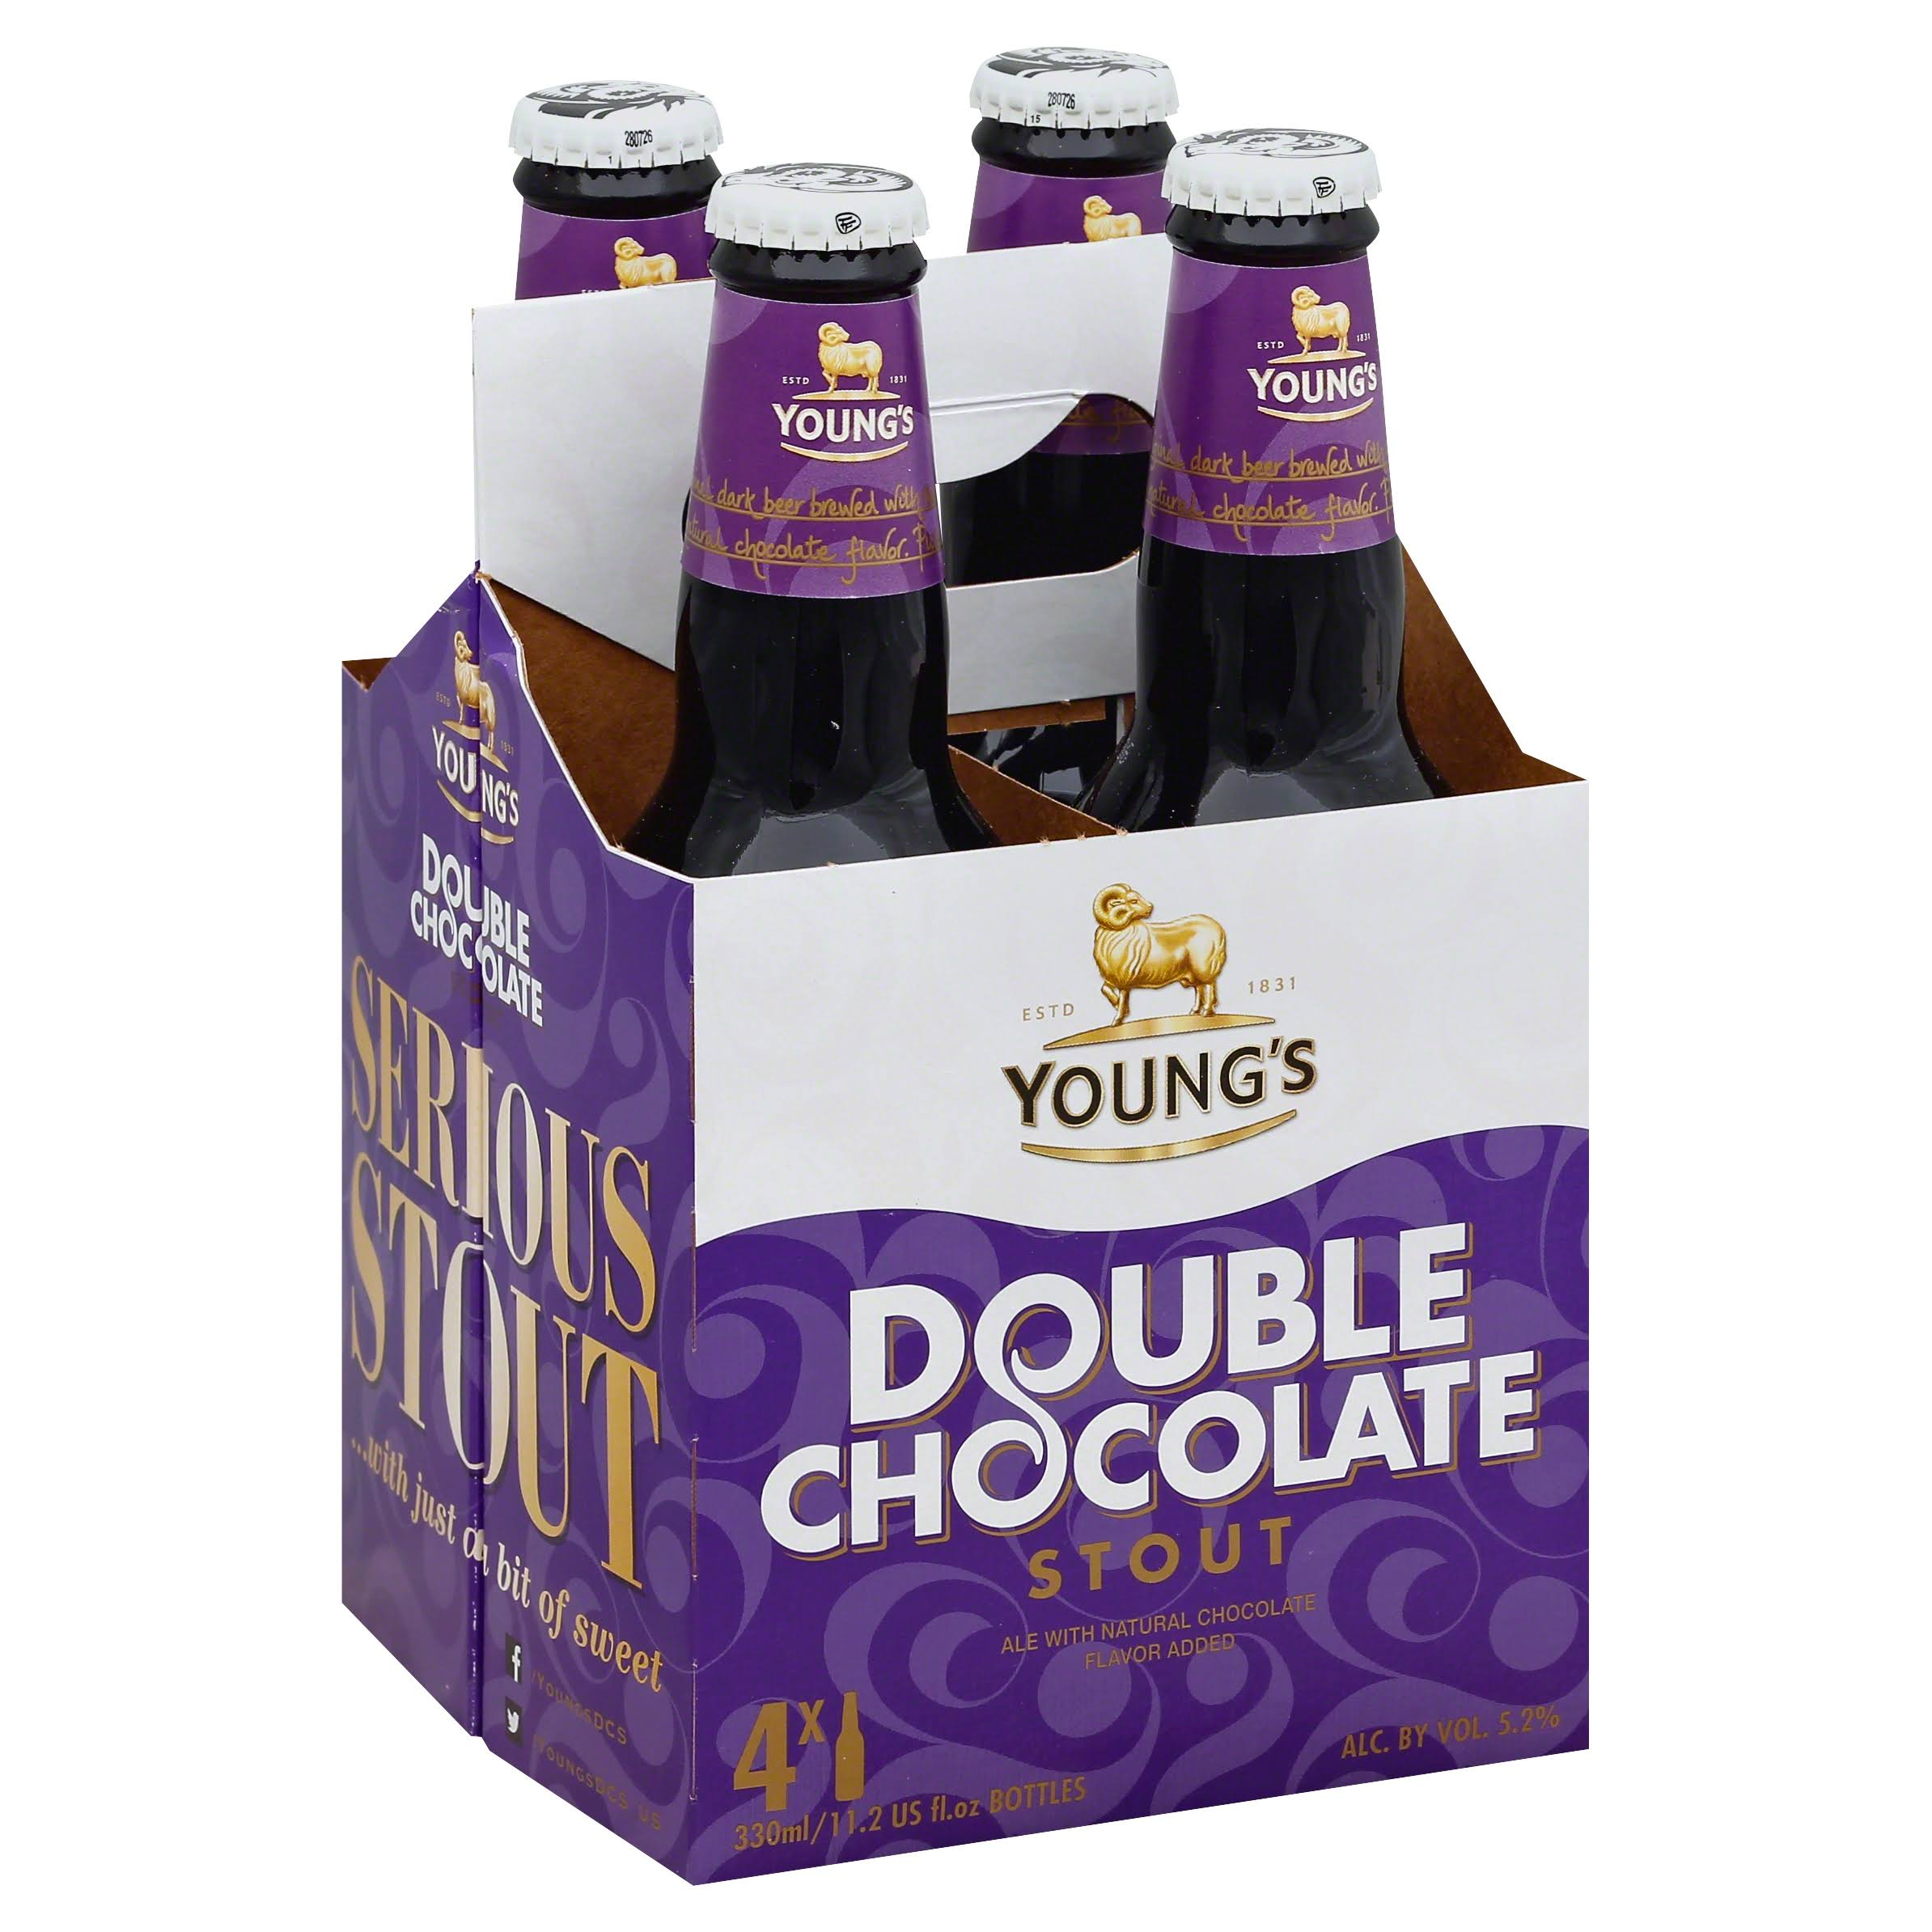 Young's Double Chocolate Stout - 12 fl oz